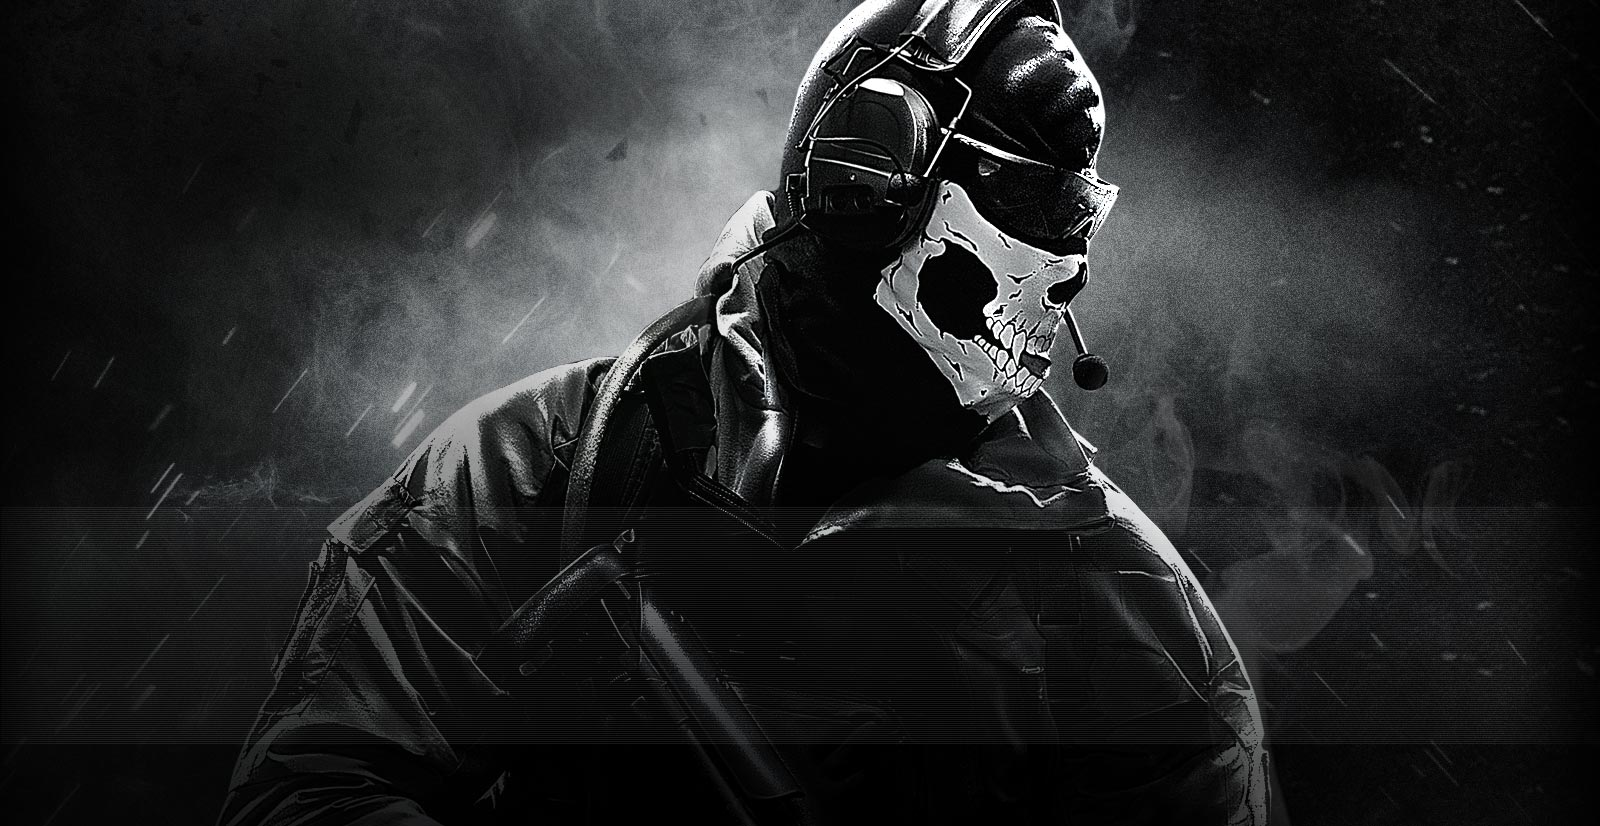 bild 1 9 call of duty ghosts call of duty ghosts bild 2 9 call 1600x826